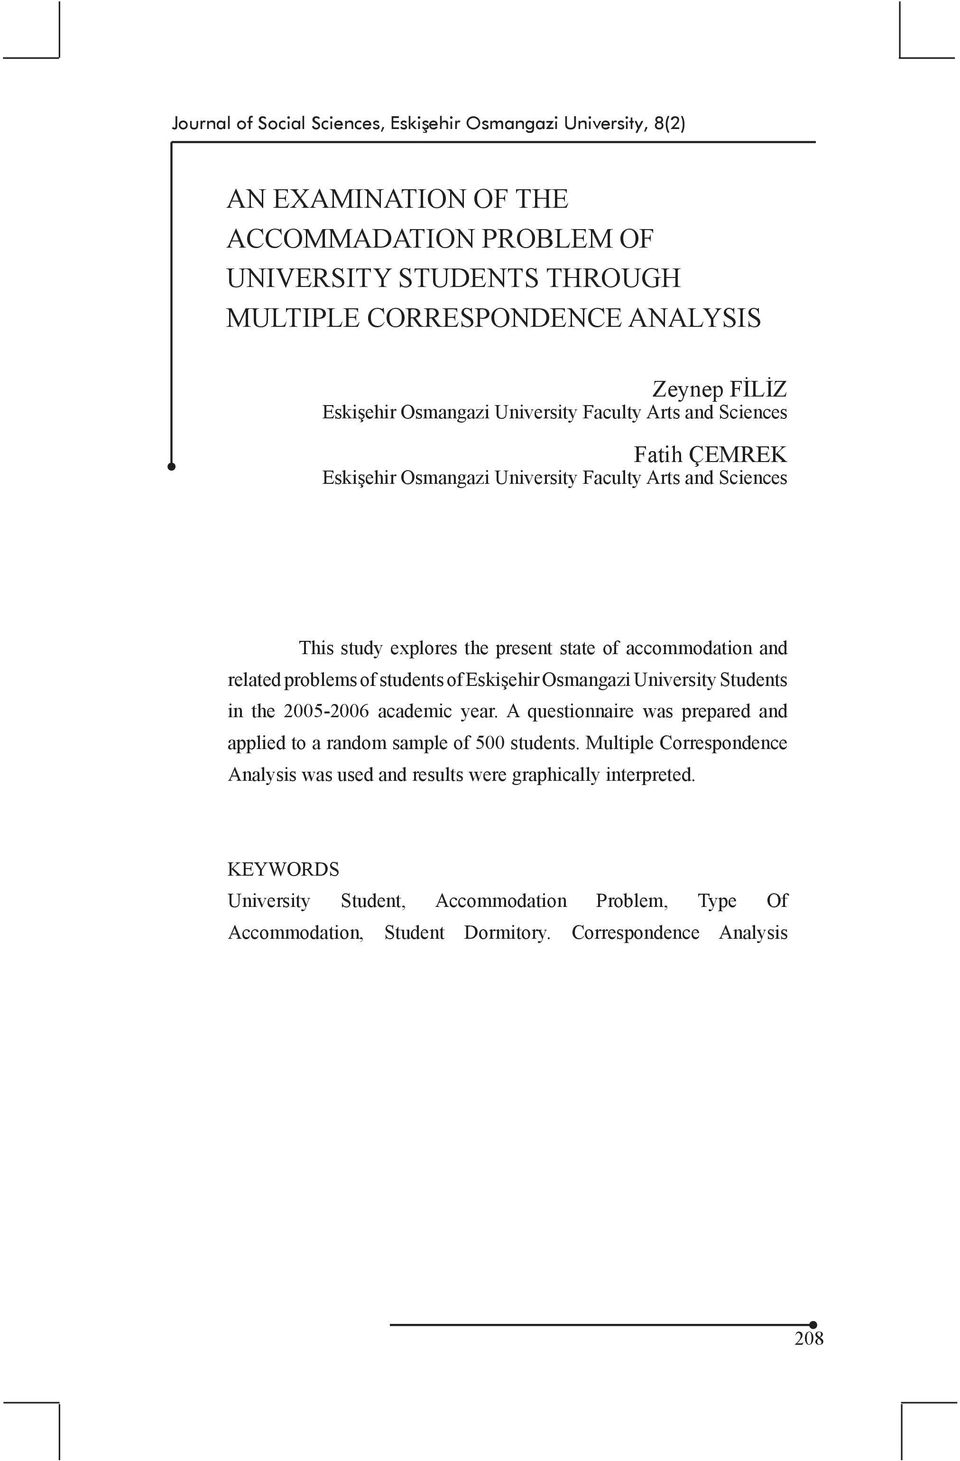 related problems of students of Eskişehir Osmangazi University Students in the 2005-2006 academic year. A questionnaire was prepared and applied to a random sample of 500 students.